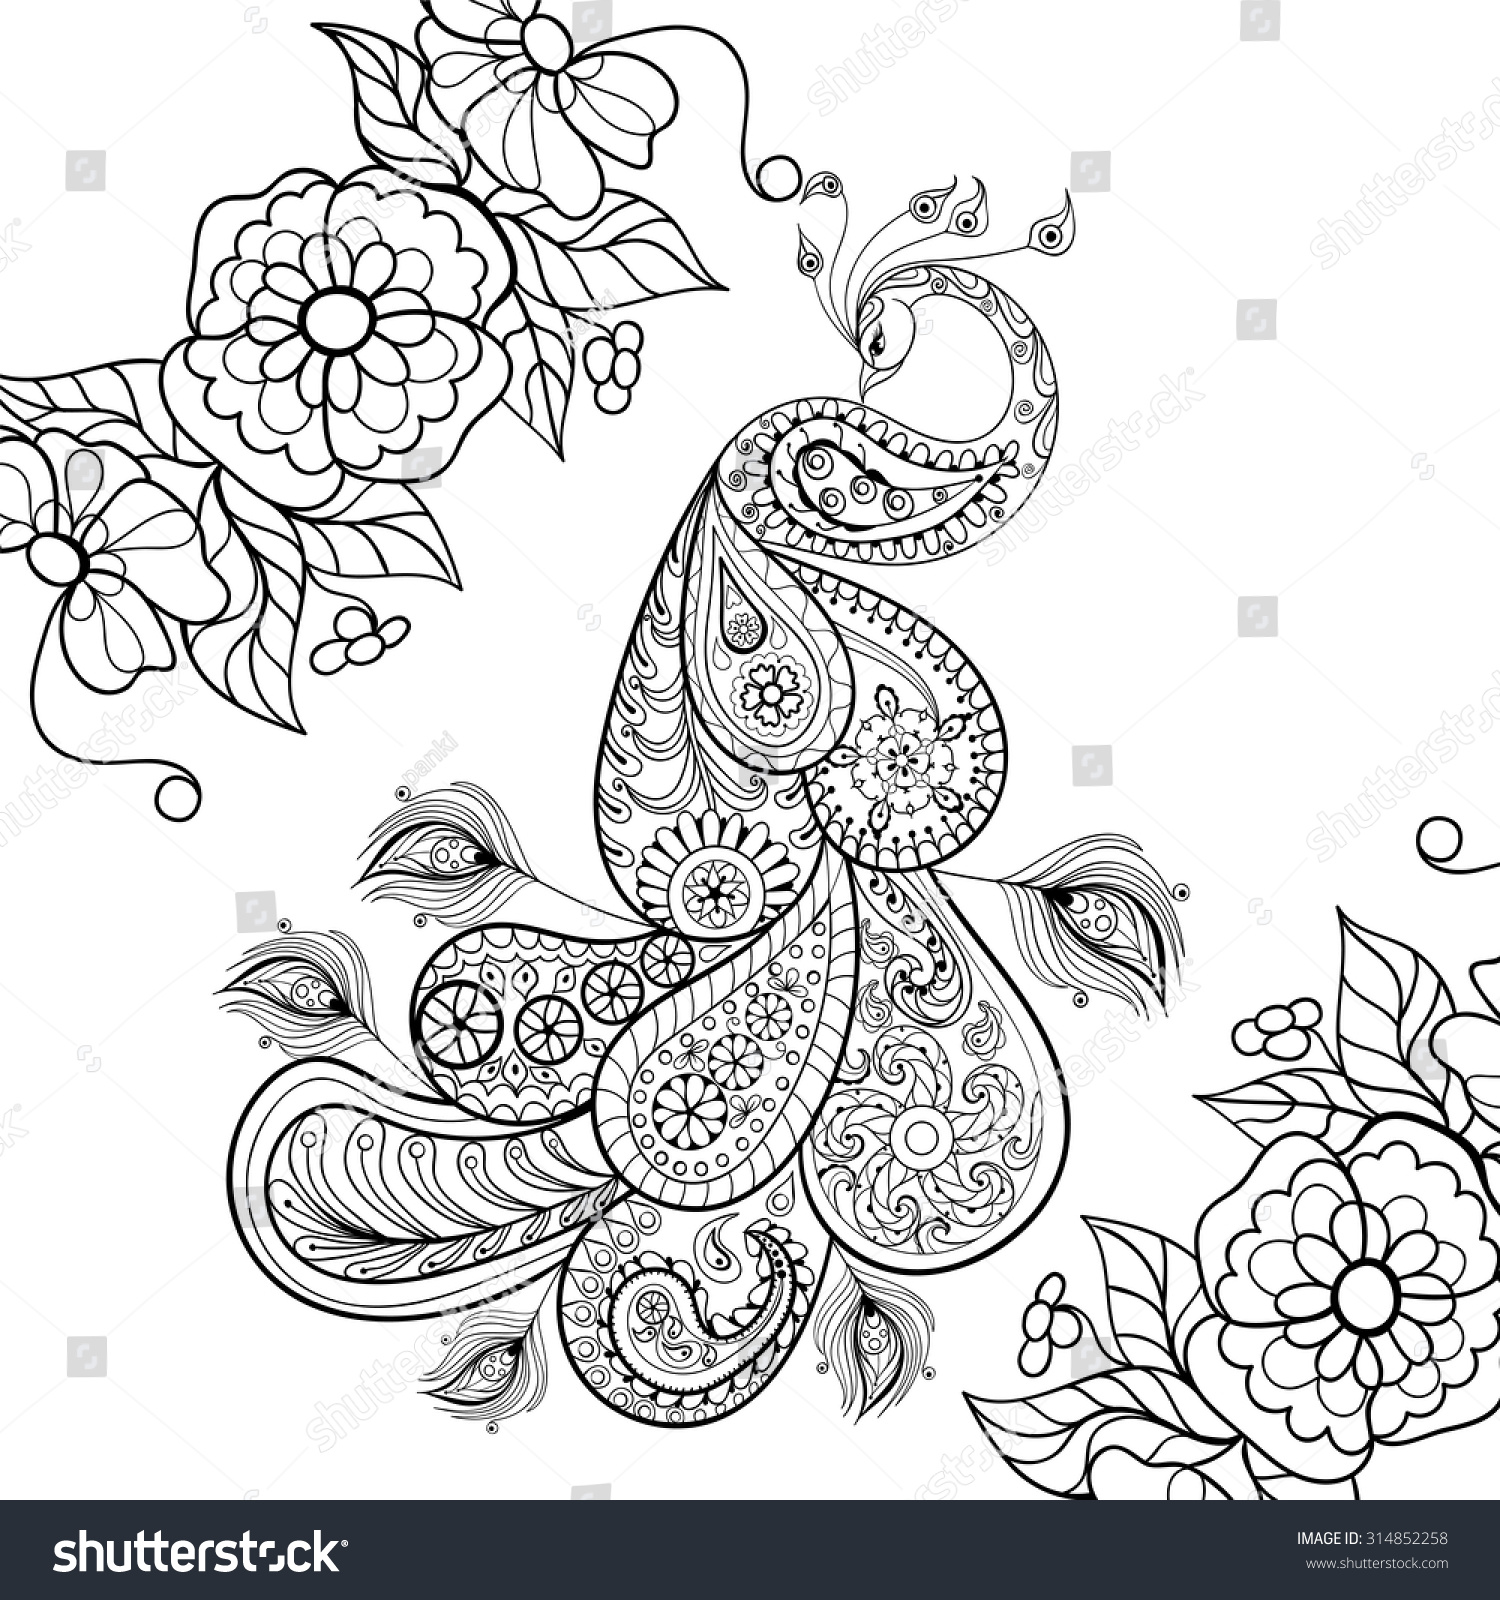 Zentangle Peacock Totem Flowersfor Adult Anti Stock Vector